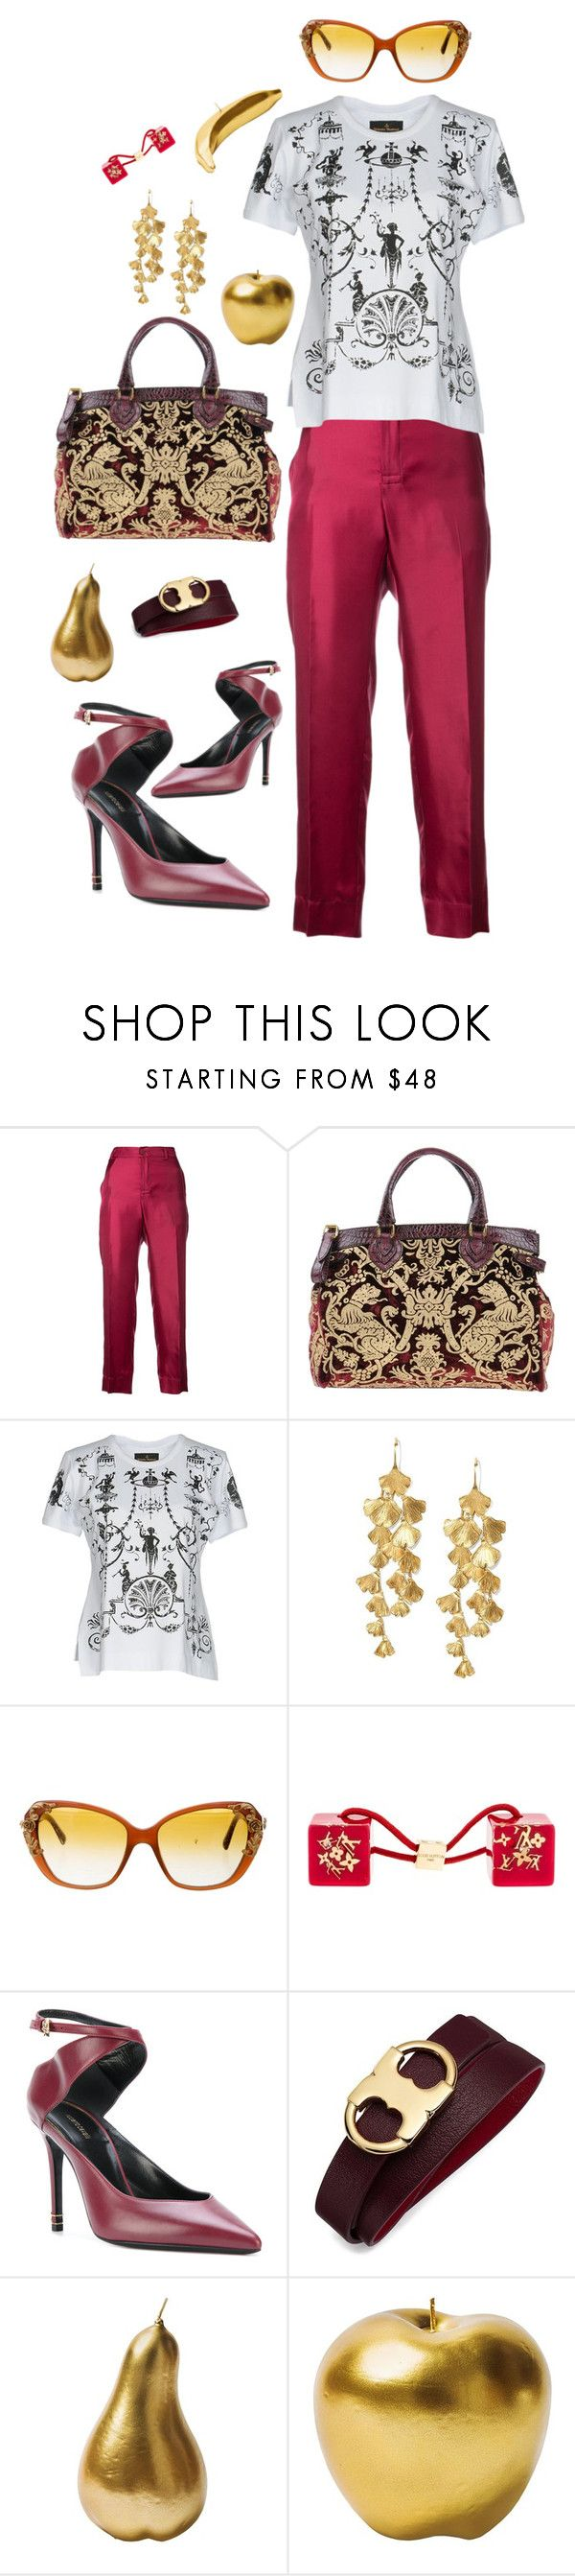 """Bold Gold Baroque"" by marcusv ❤ liked on Polyvore featuring F.R.S For Restless Sleepers, Roberto Cavalli, Vivienne Westwood Anglomania, Tory Burch, Dolce&Gabbana, Louis Vuitton and Bitossi"